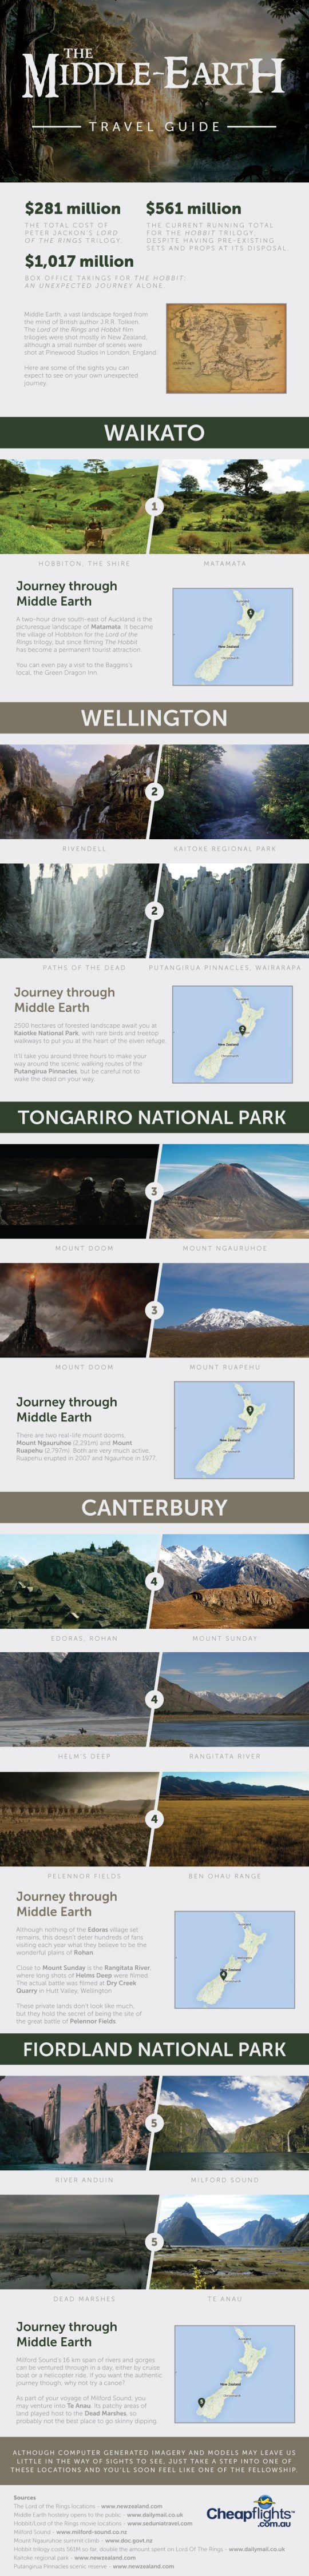 The Middle-Earth Travel Guide